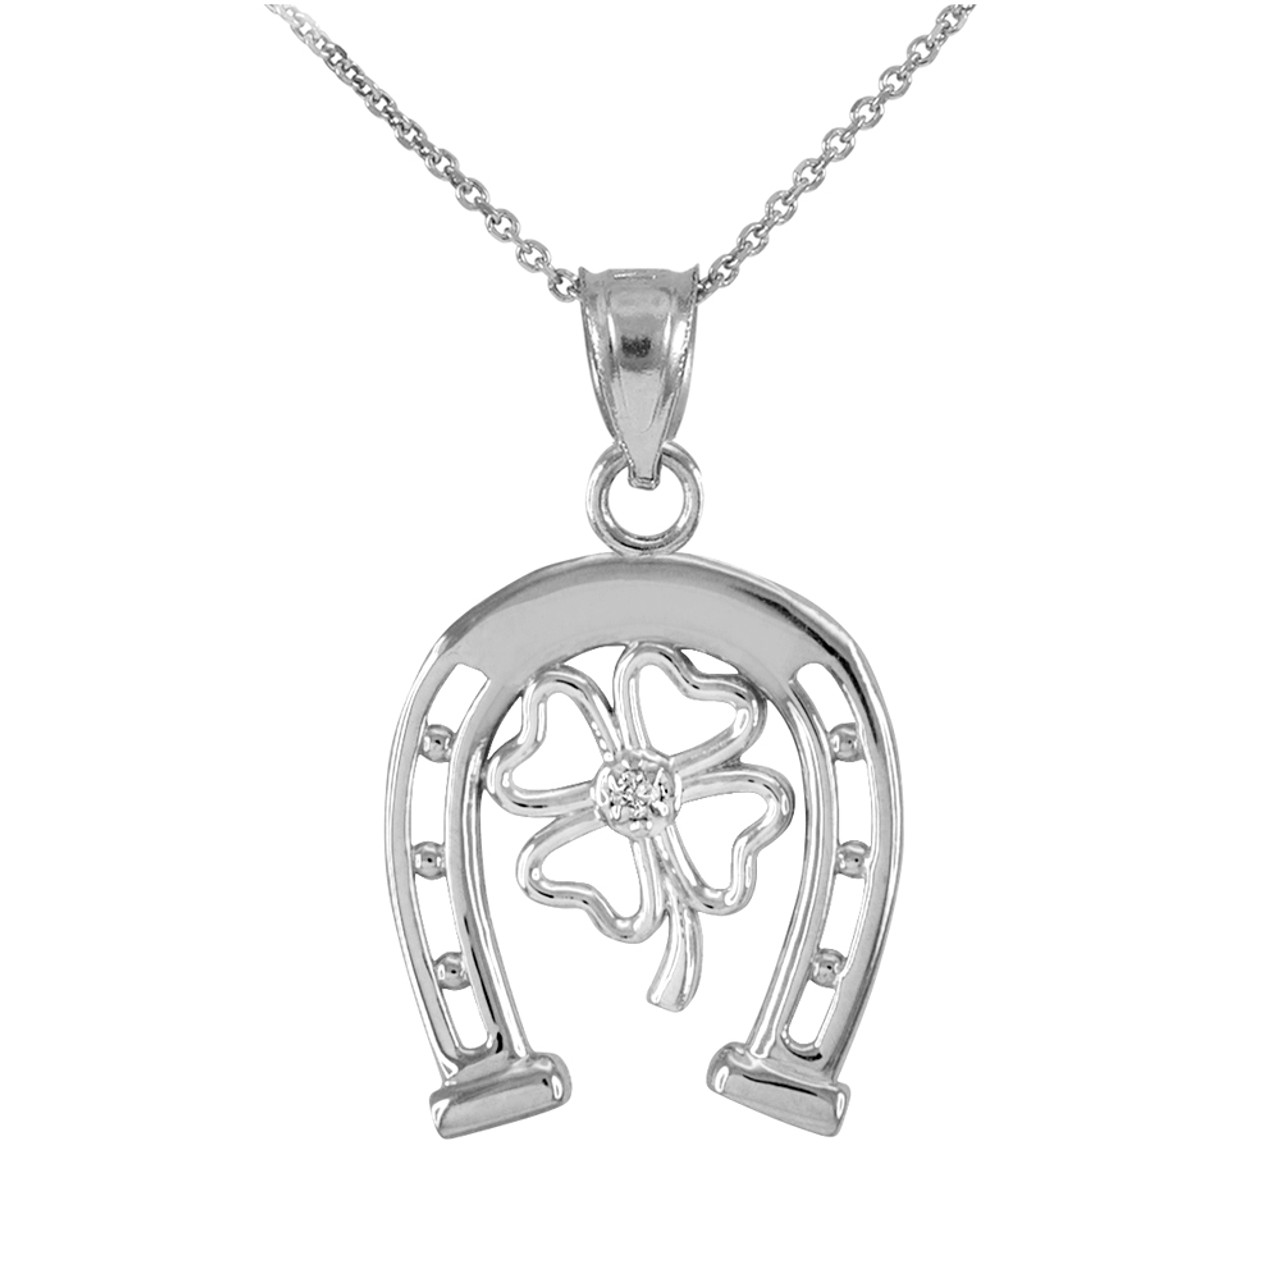 925 sterling silver lucky horseshoe with cz 4 leaf clover pendant 925 sterling silver lucky horseshoe with cz 4 leaf clover pendant necklace aloadofball Image collections